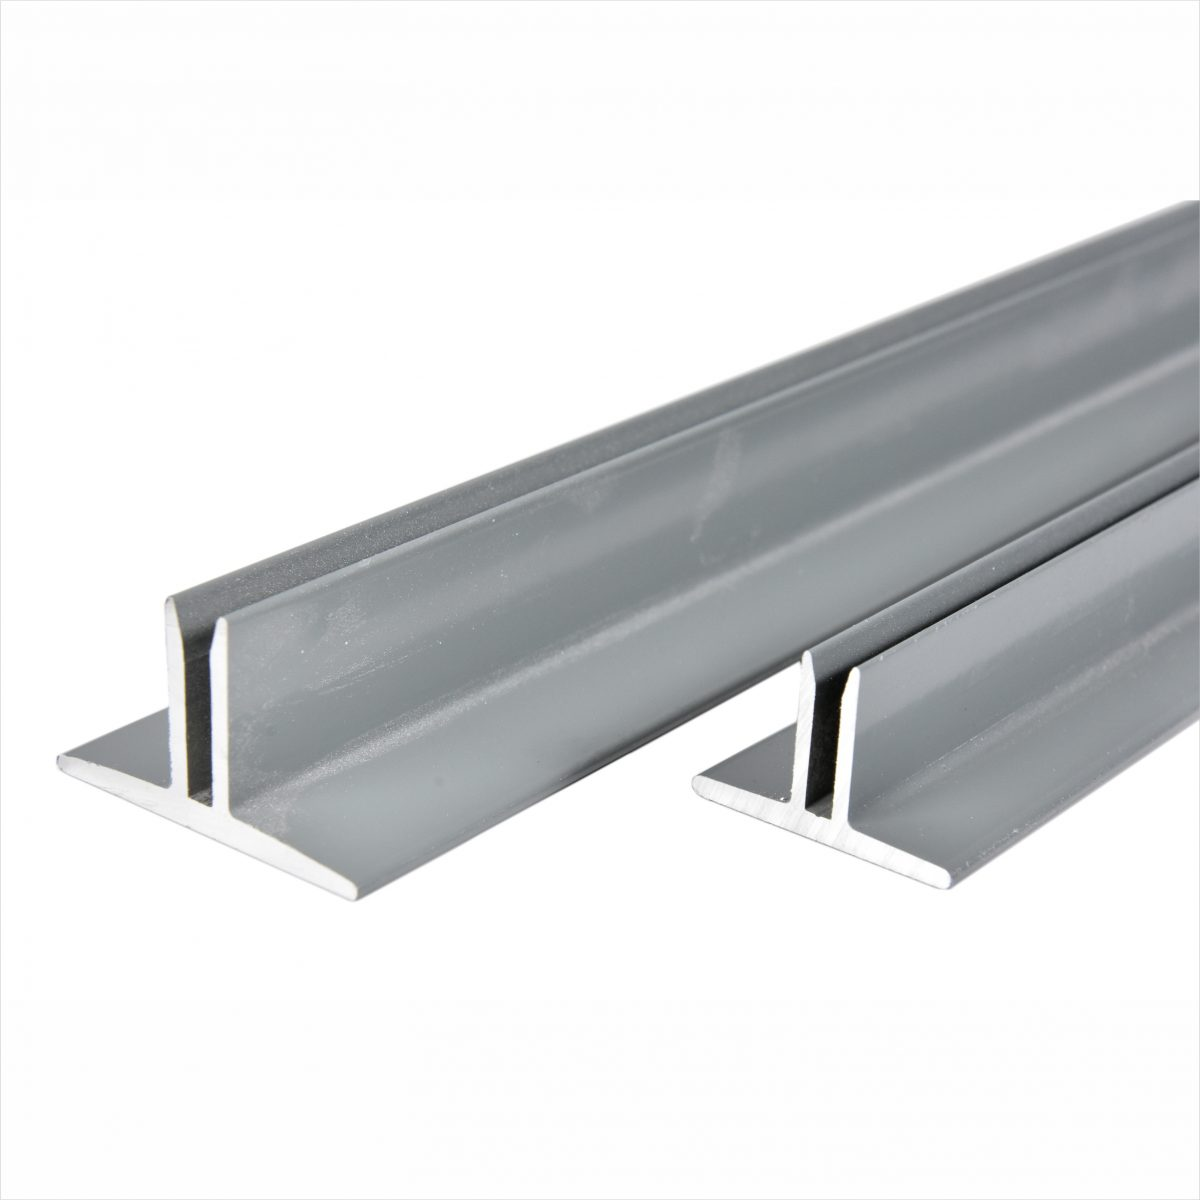 Ashby Fixings Standard Aluminium Profiles Sign Channel